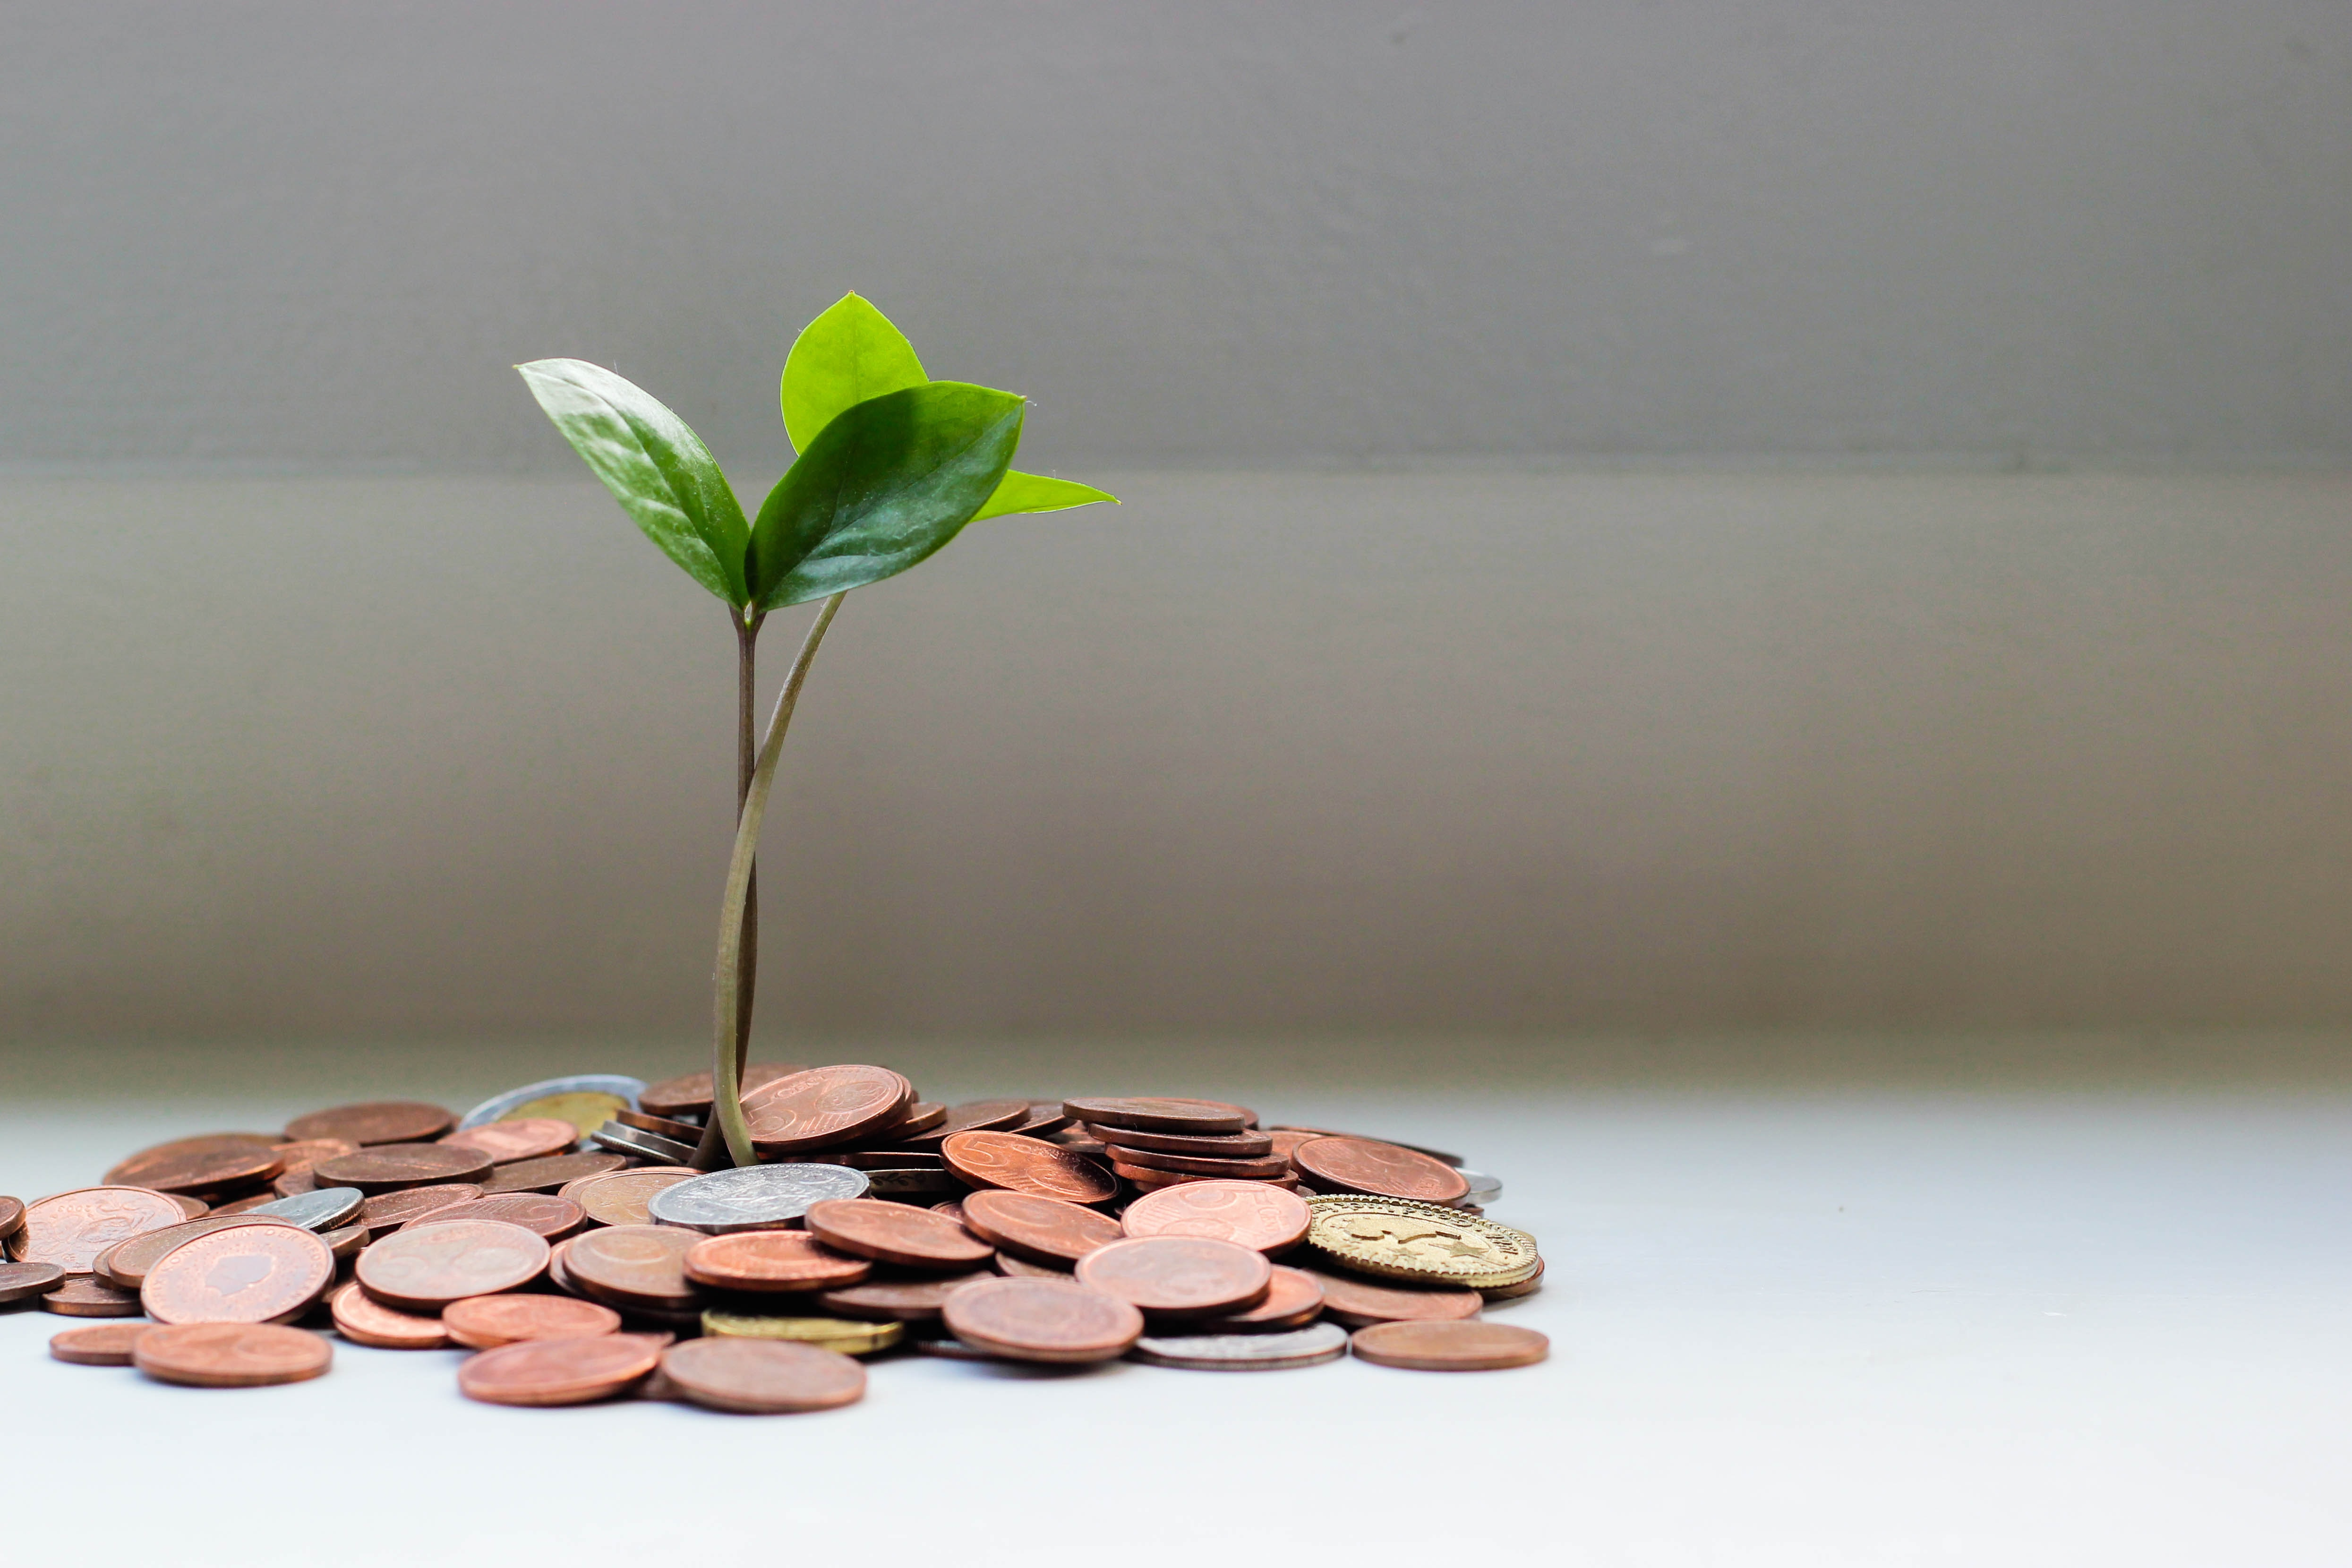 plant and money signifying how doctors help life and get paid to do so